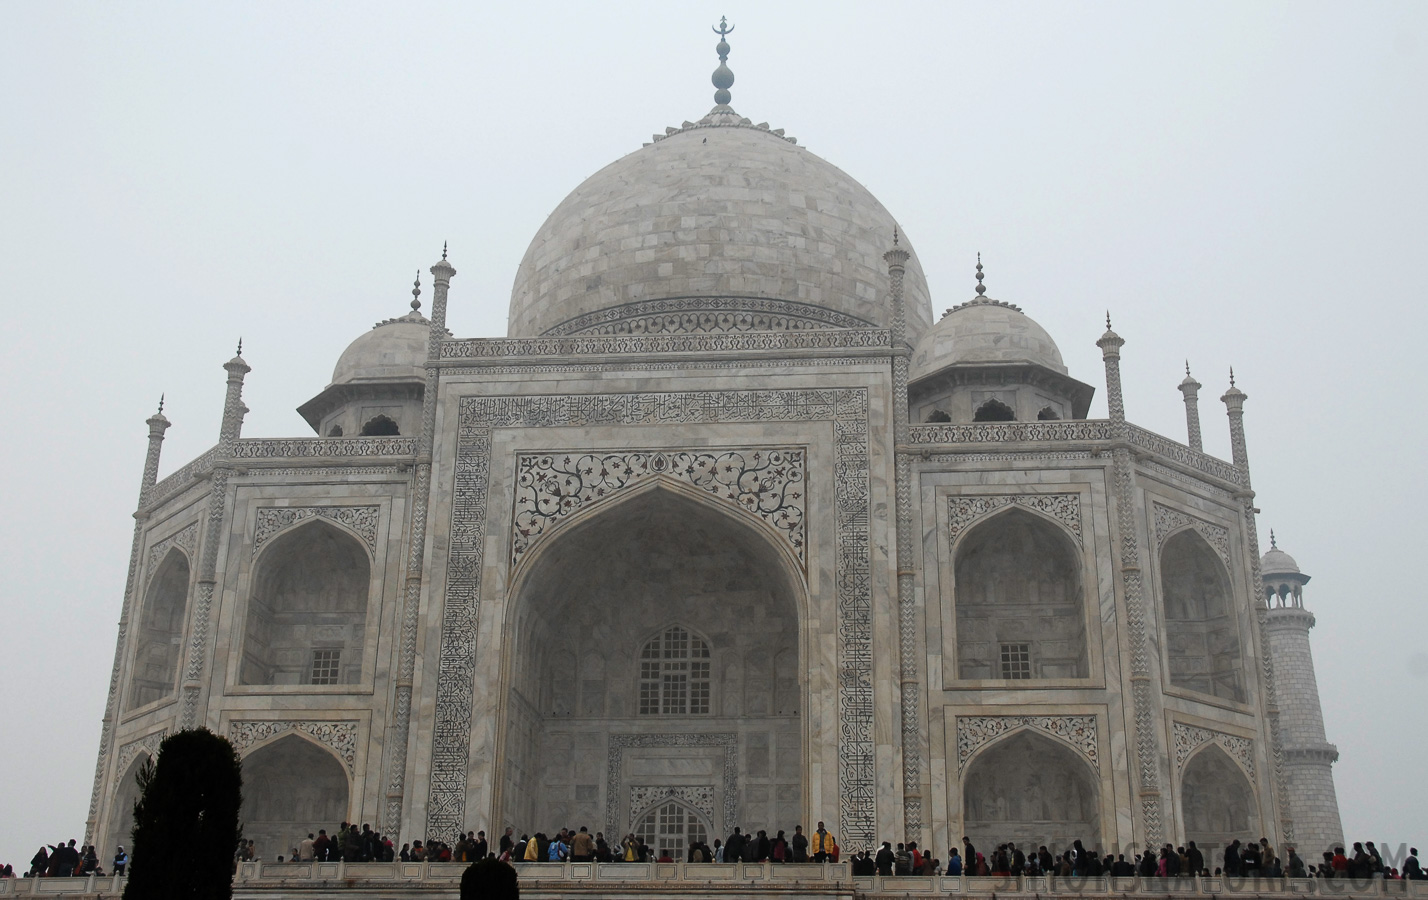 Taj Mahal [24 mm, 1/90 sec at f / 7.1, ISO 400]